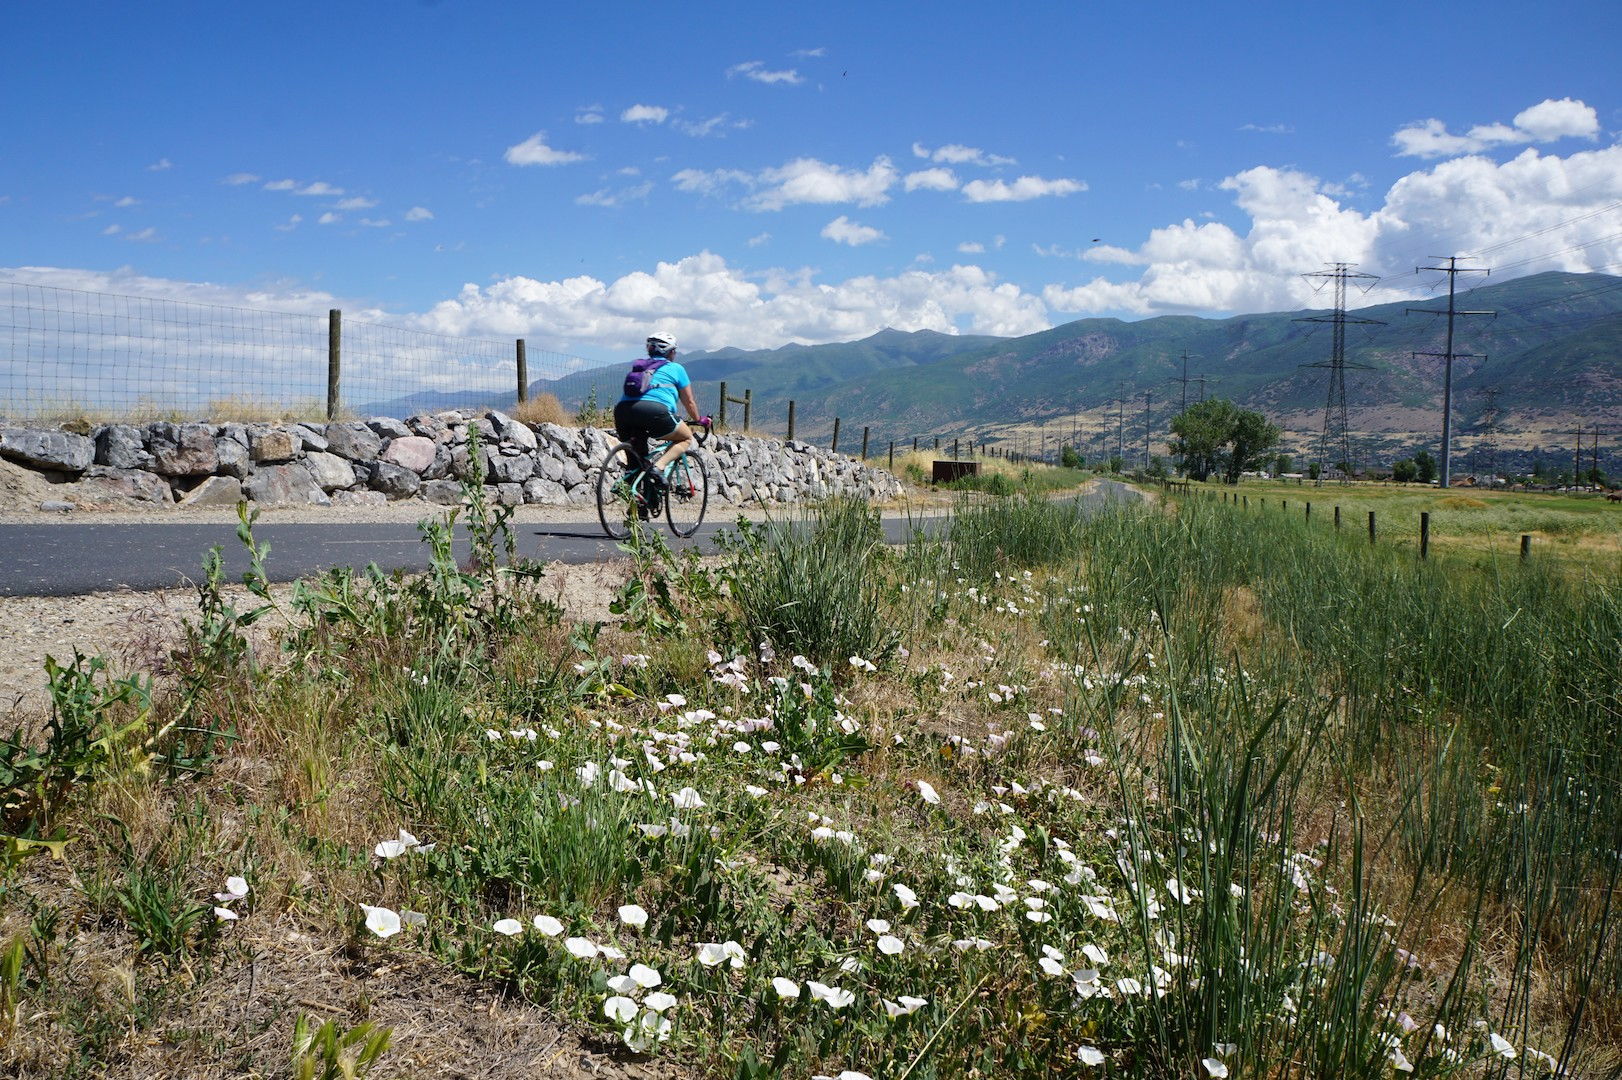 Utah's Golden Spoke Trail Network